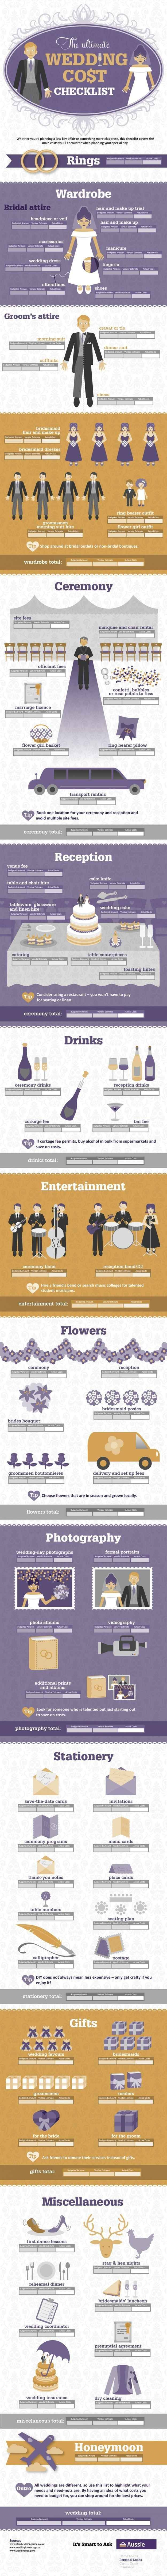 The Ultimate Wedding Cost Checklist Infographic - Well, That's Useful. Will  Probably Put It In Checklist Form, As Opposed To Infographic, But Still,  Spiffy.